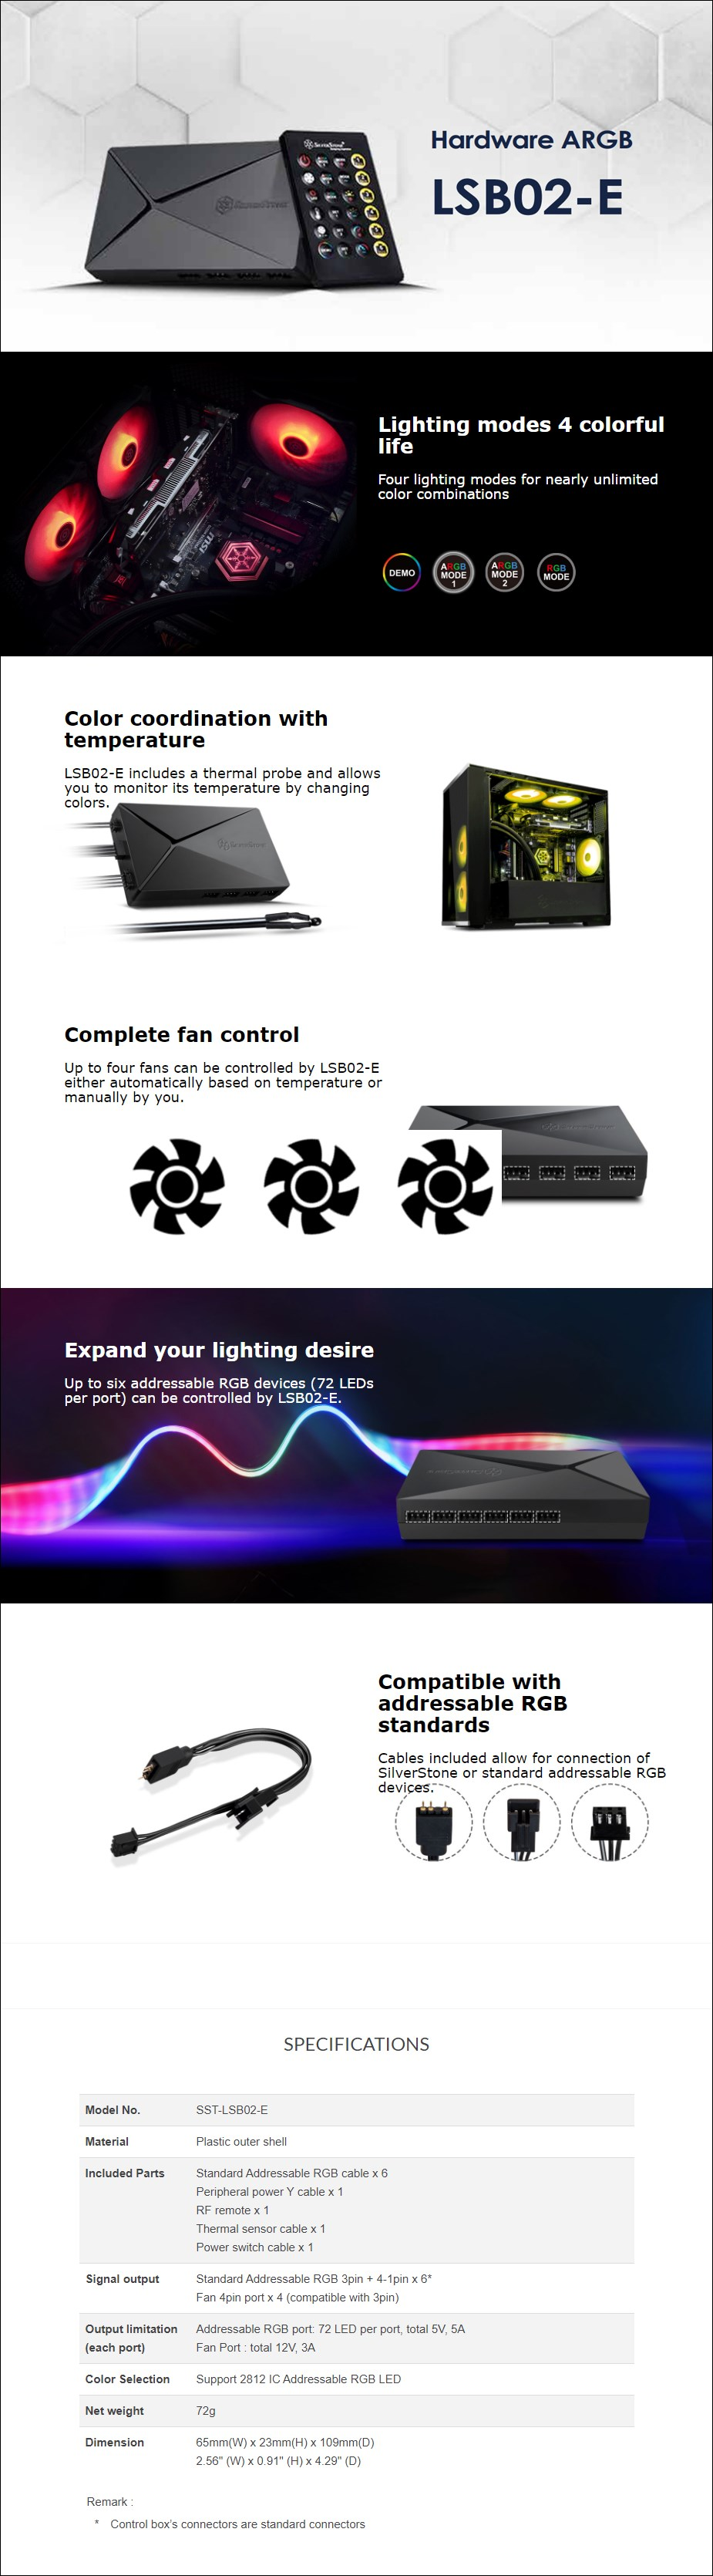 SilverStone LSB02-E Adressable RGB Device Controller - Overview 1